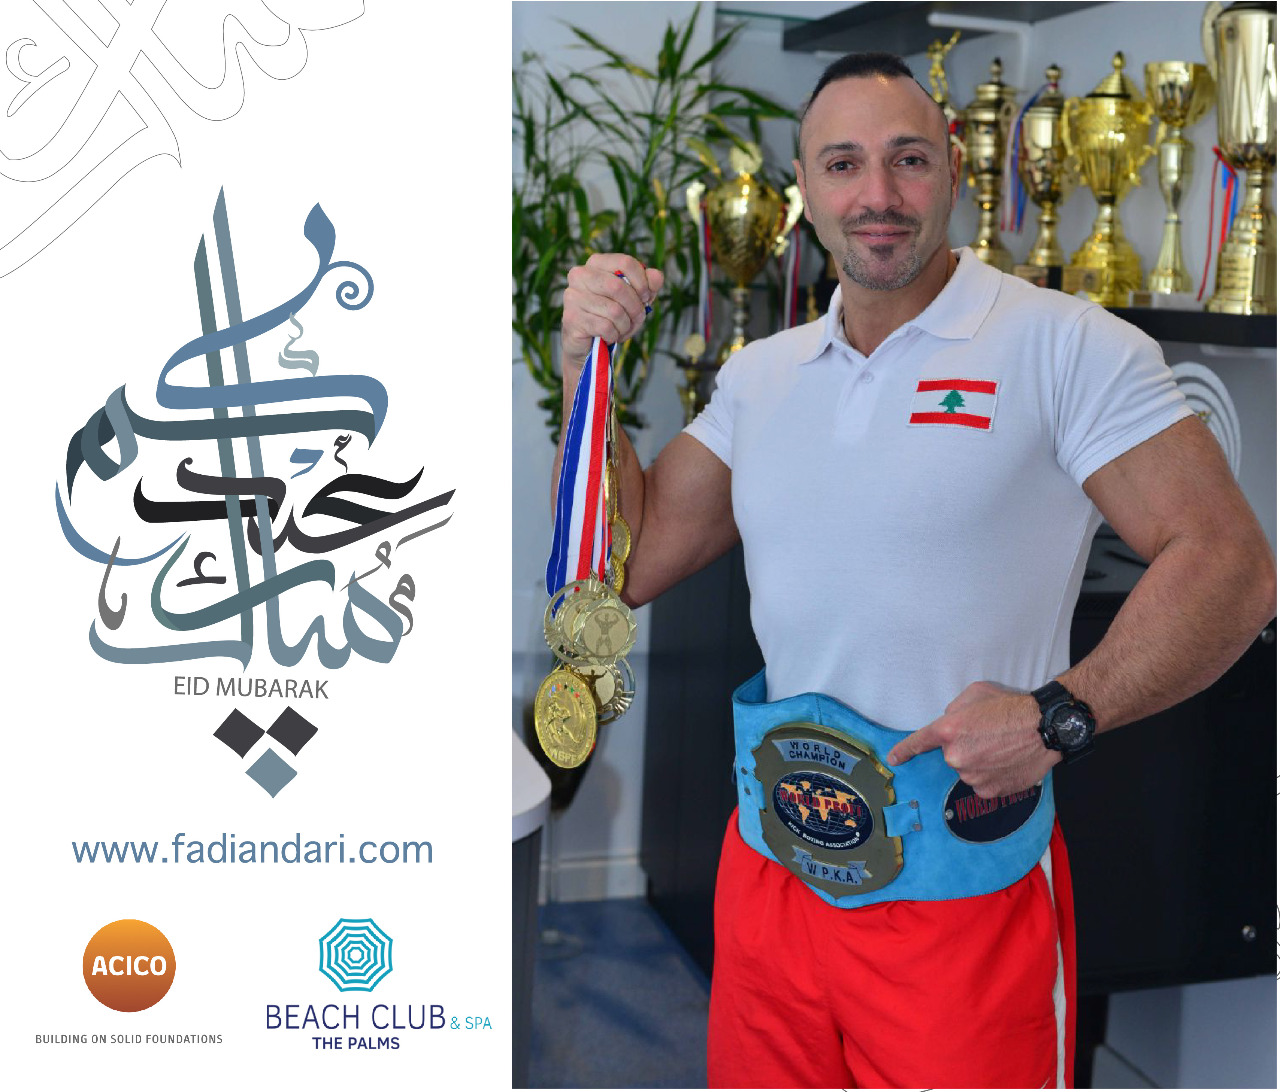 Kuwait Propta Personal Trainer Certification Courses Professional